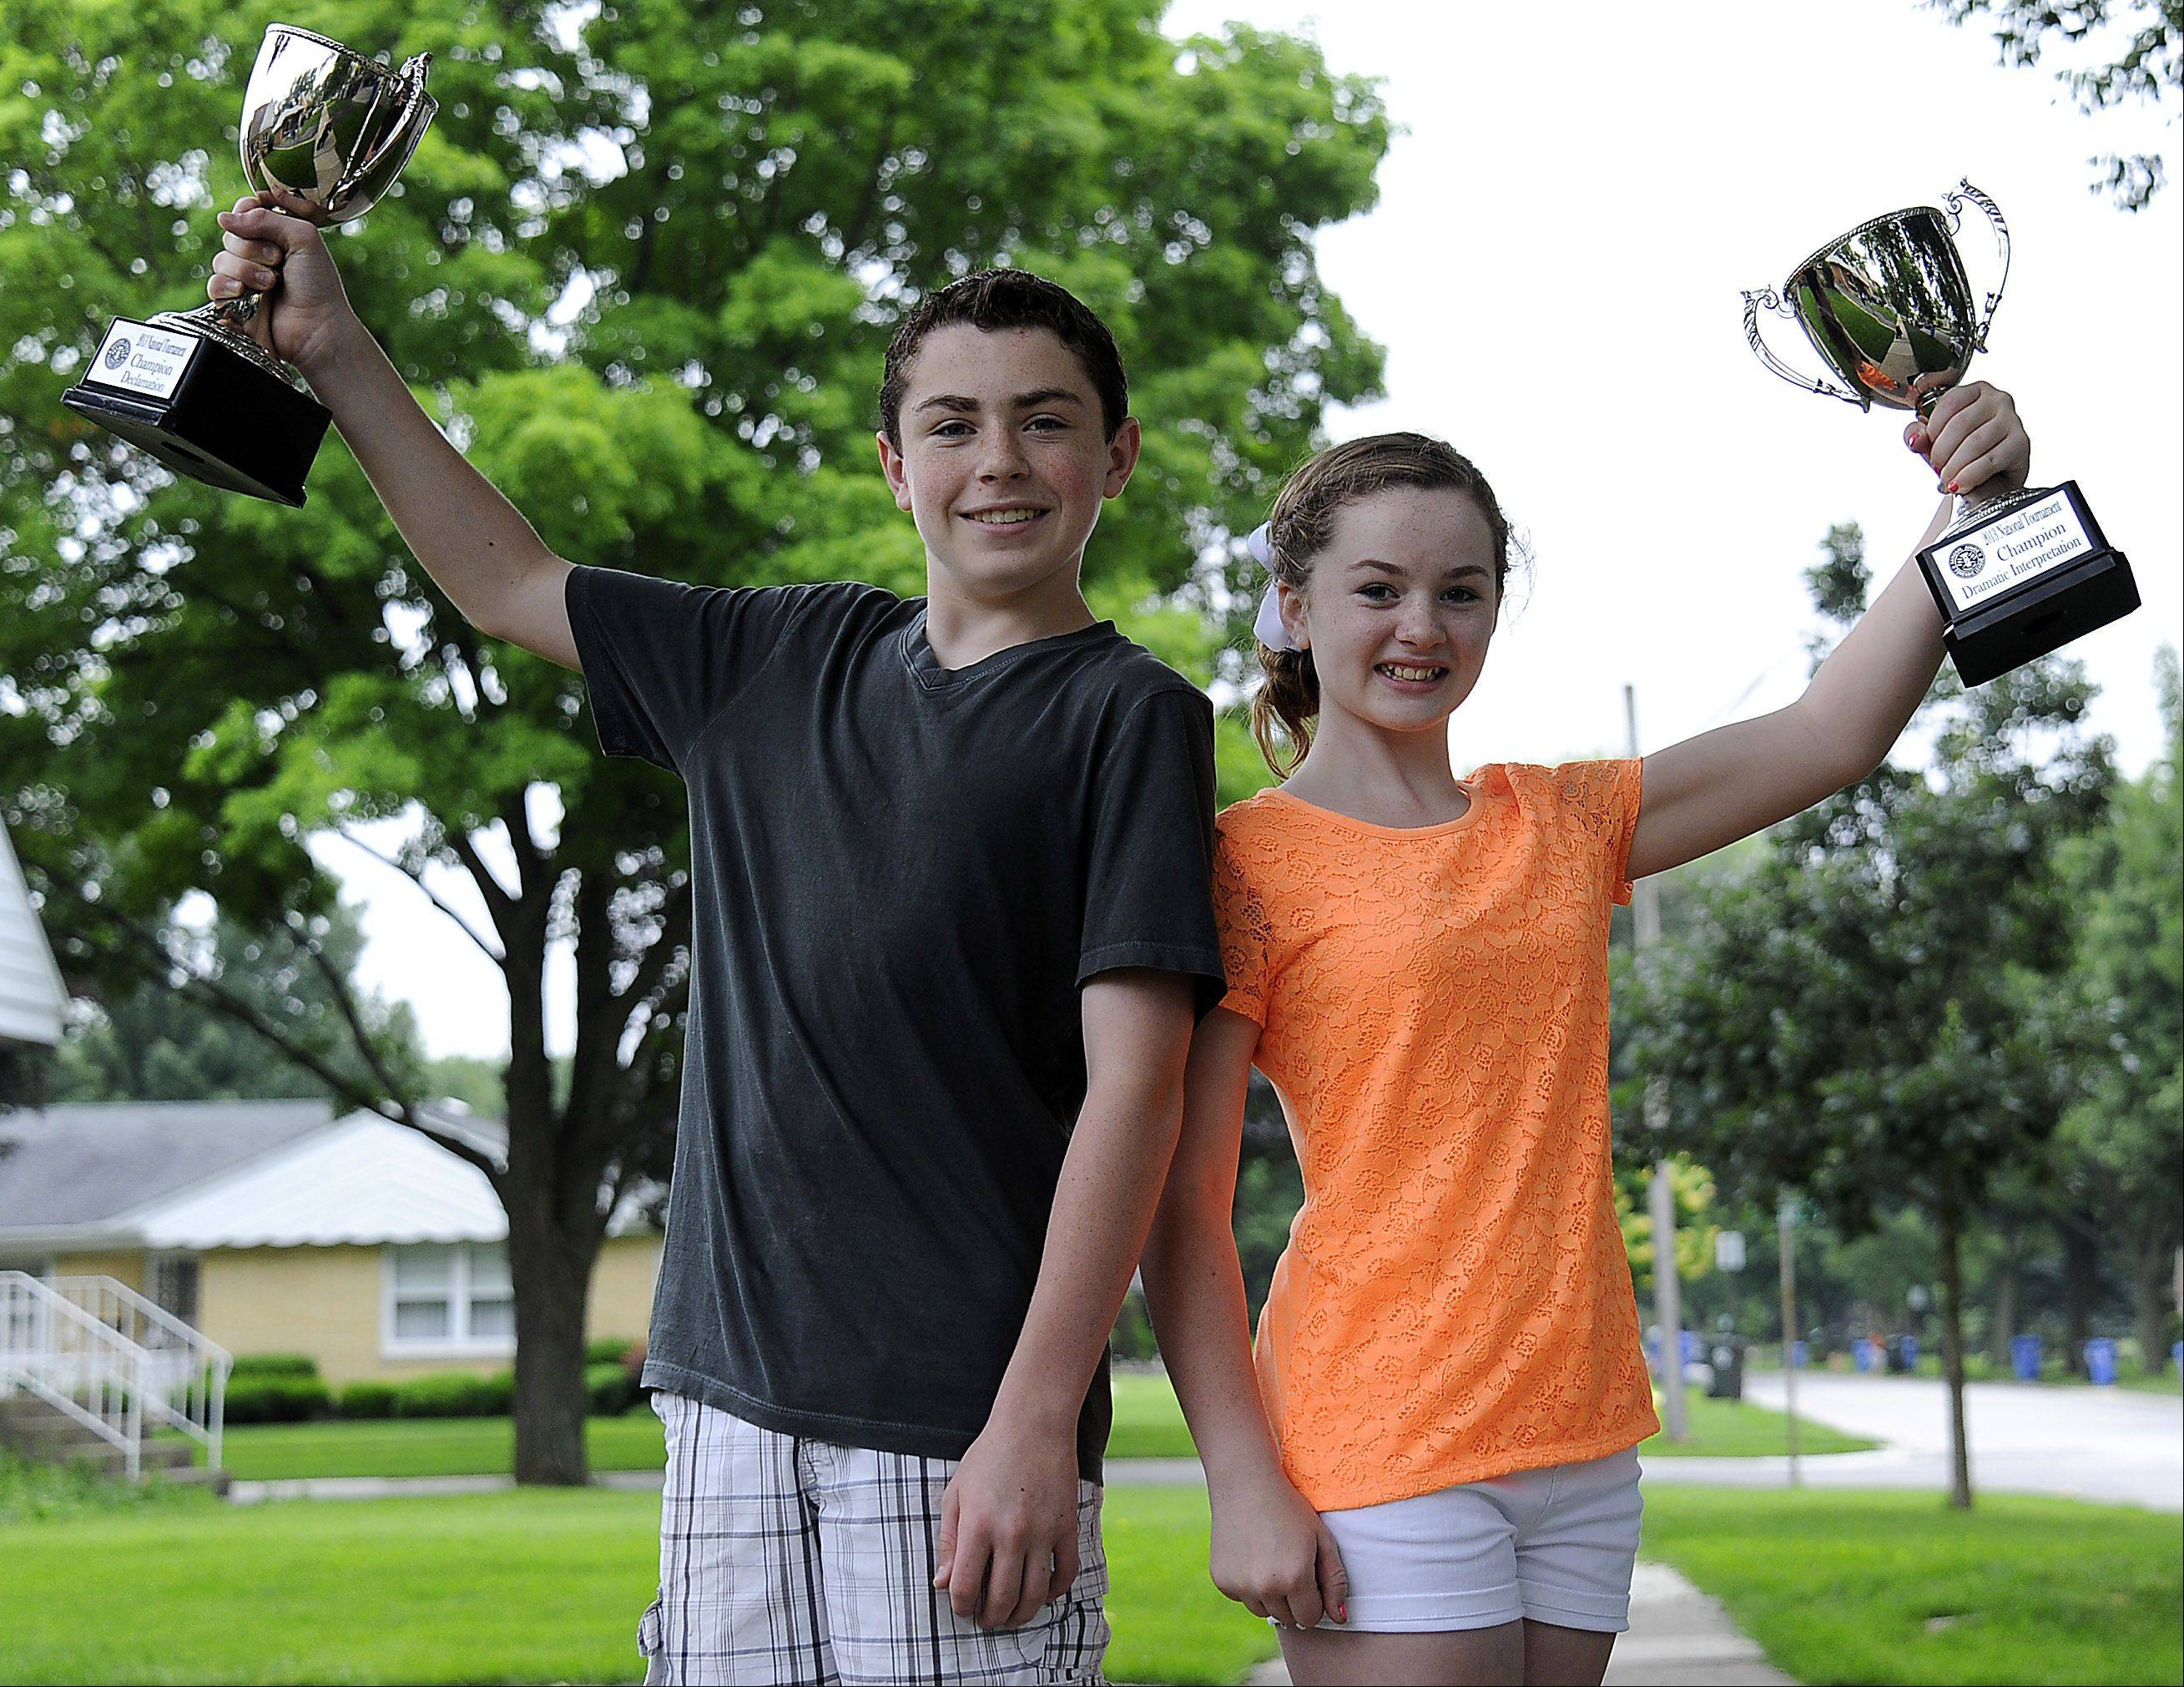 Jimmy, 14, and Molly McDermott, 13, of Mount Prospect, are looking forward to more challenging speech and debate tournaments in their futures.